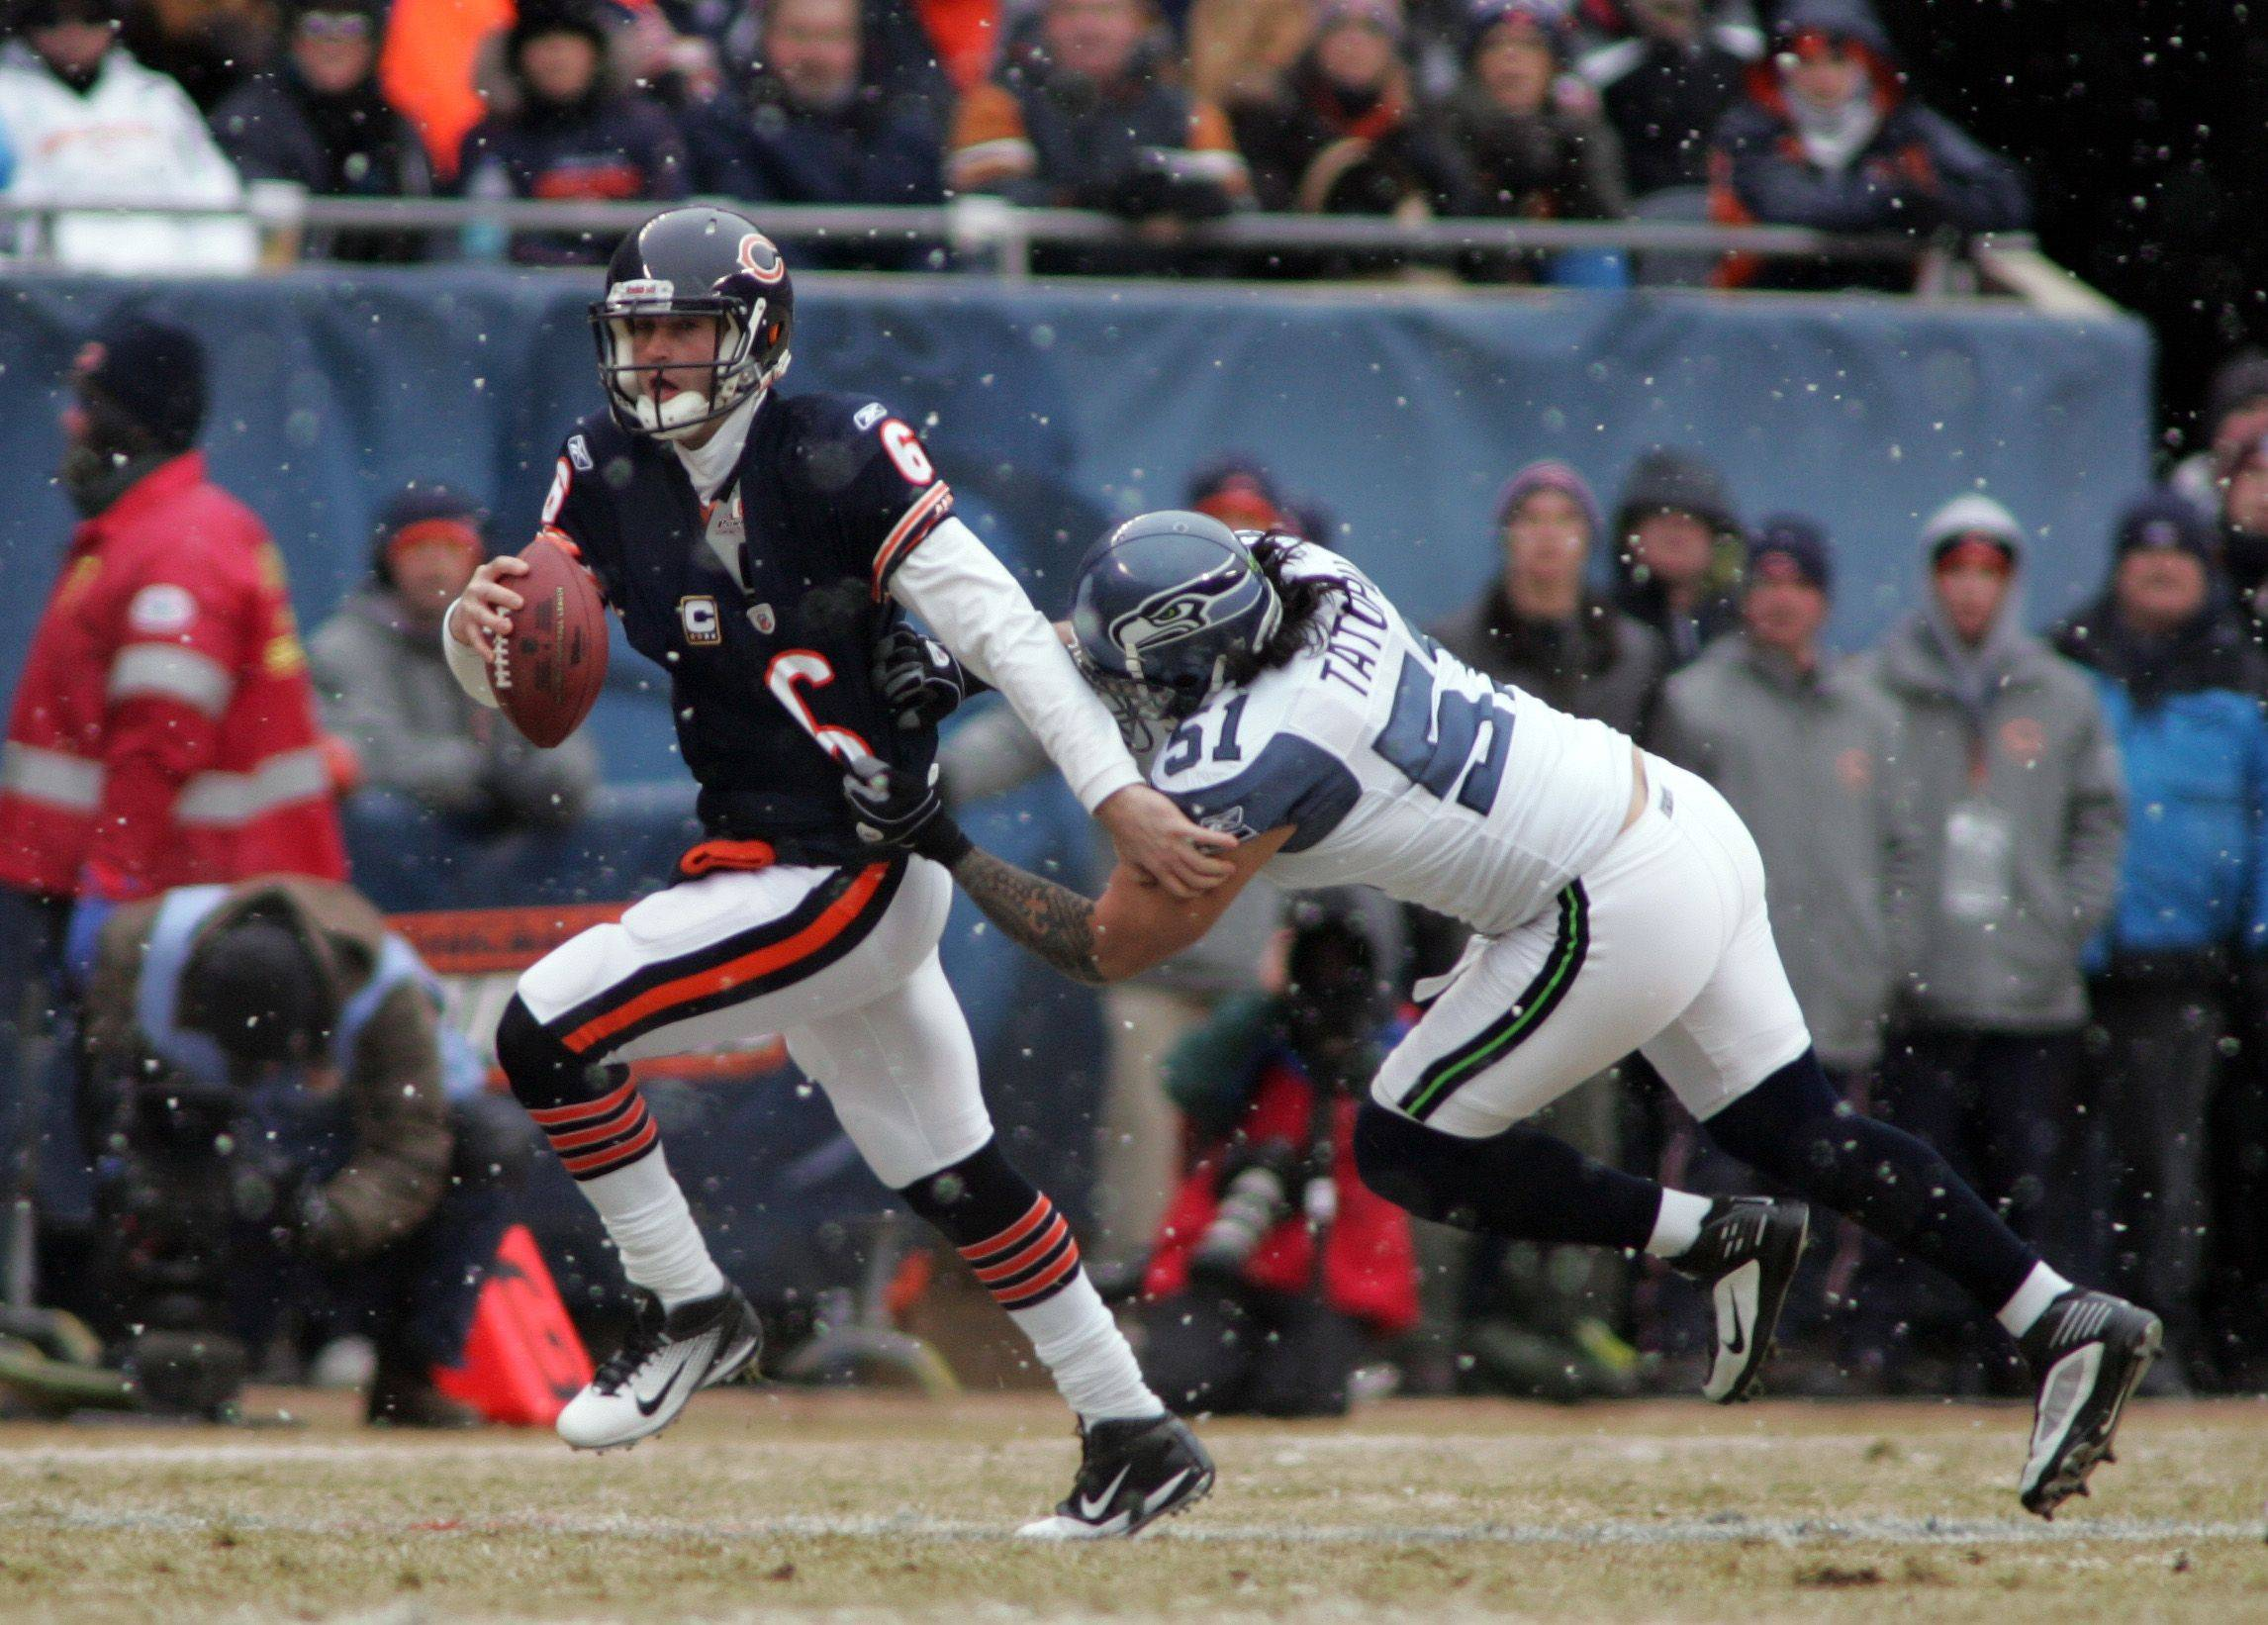 Busting loose, Cutler's running makes Seahawks sick